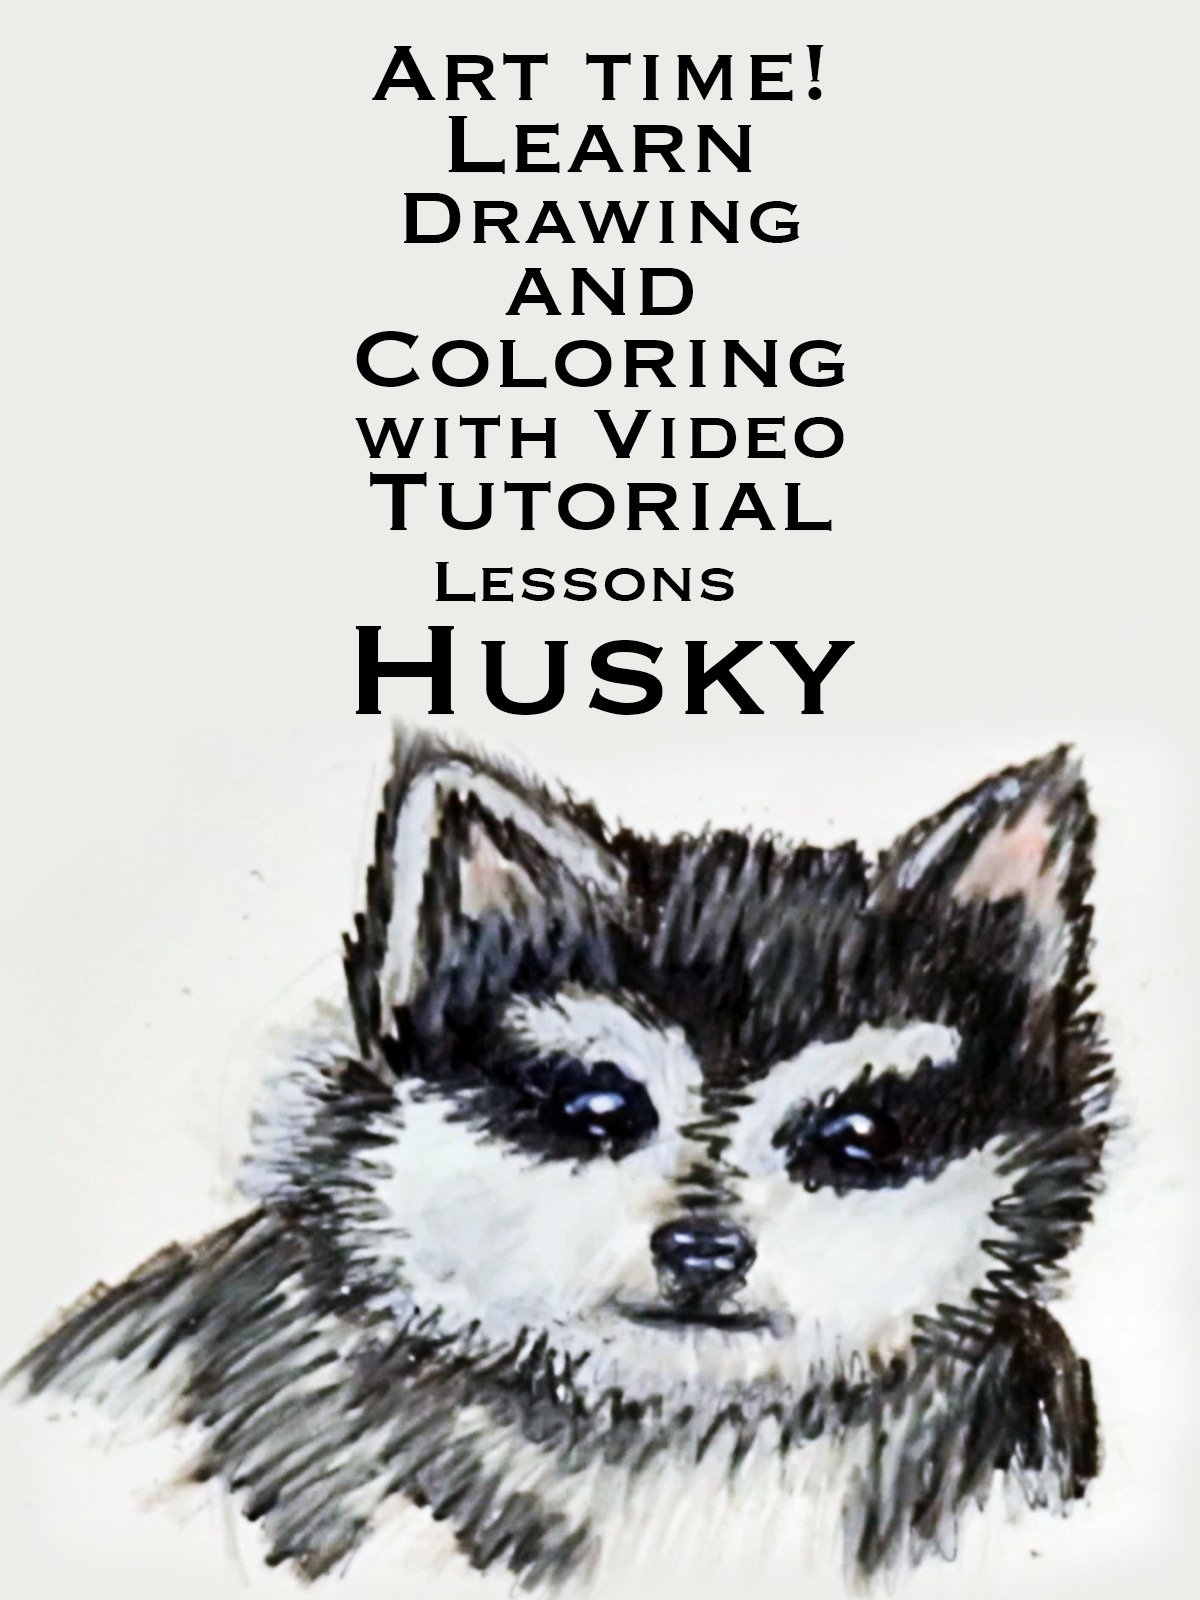 Art Time! Learn Drawing and Coloring with Video Tutorial Lessons Husky